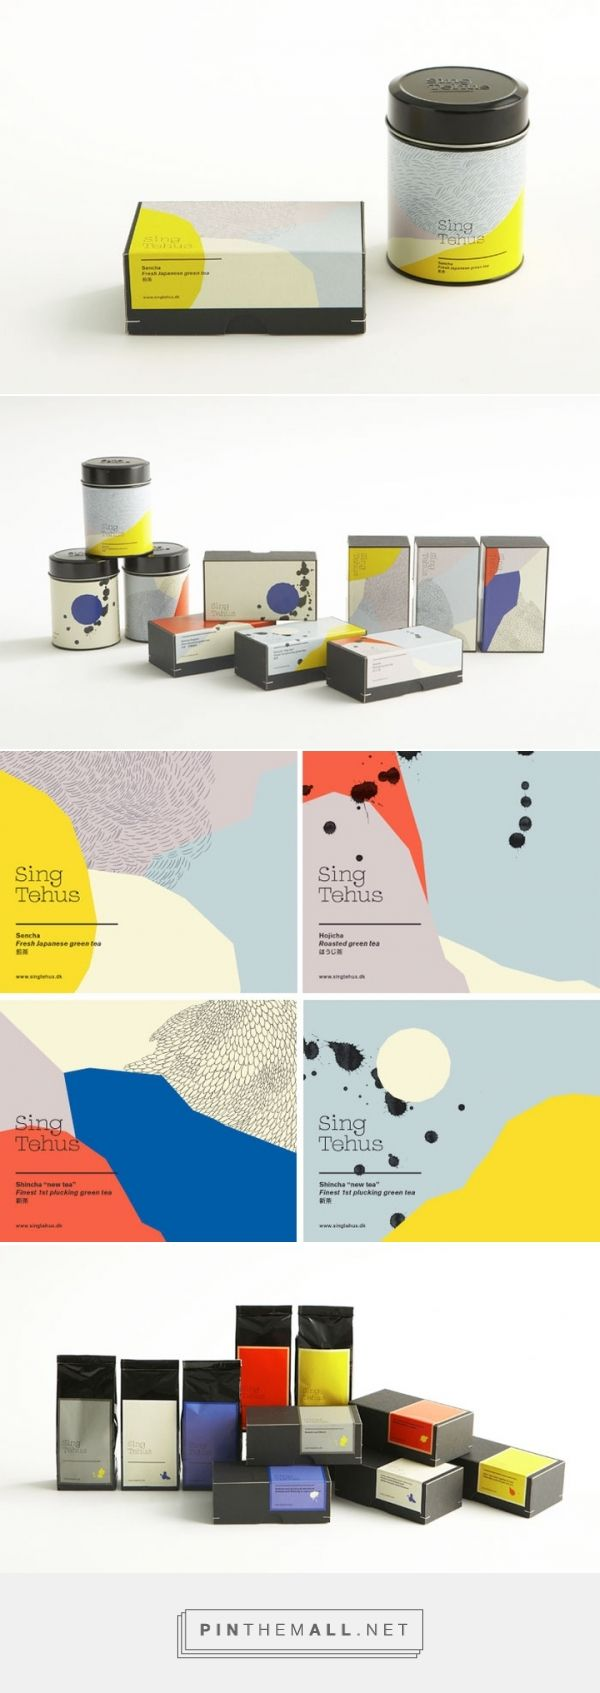 Sing Tehus - Japanese Tea Packaging Design